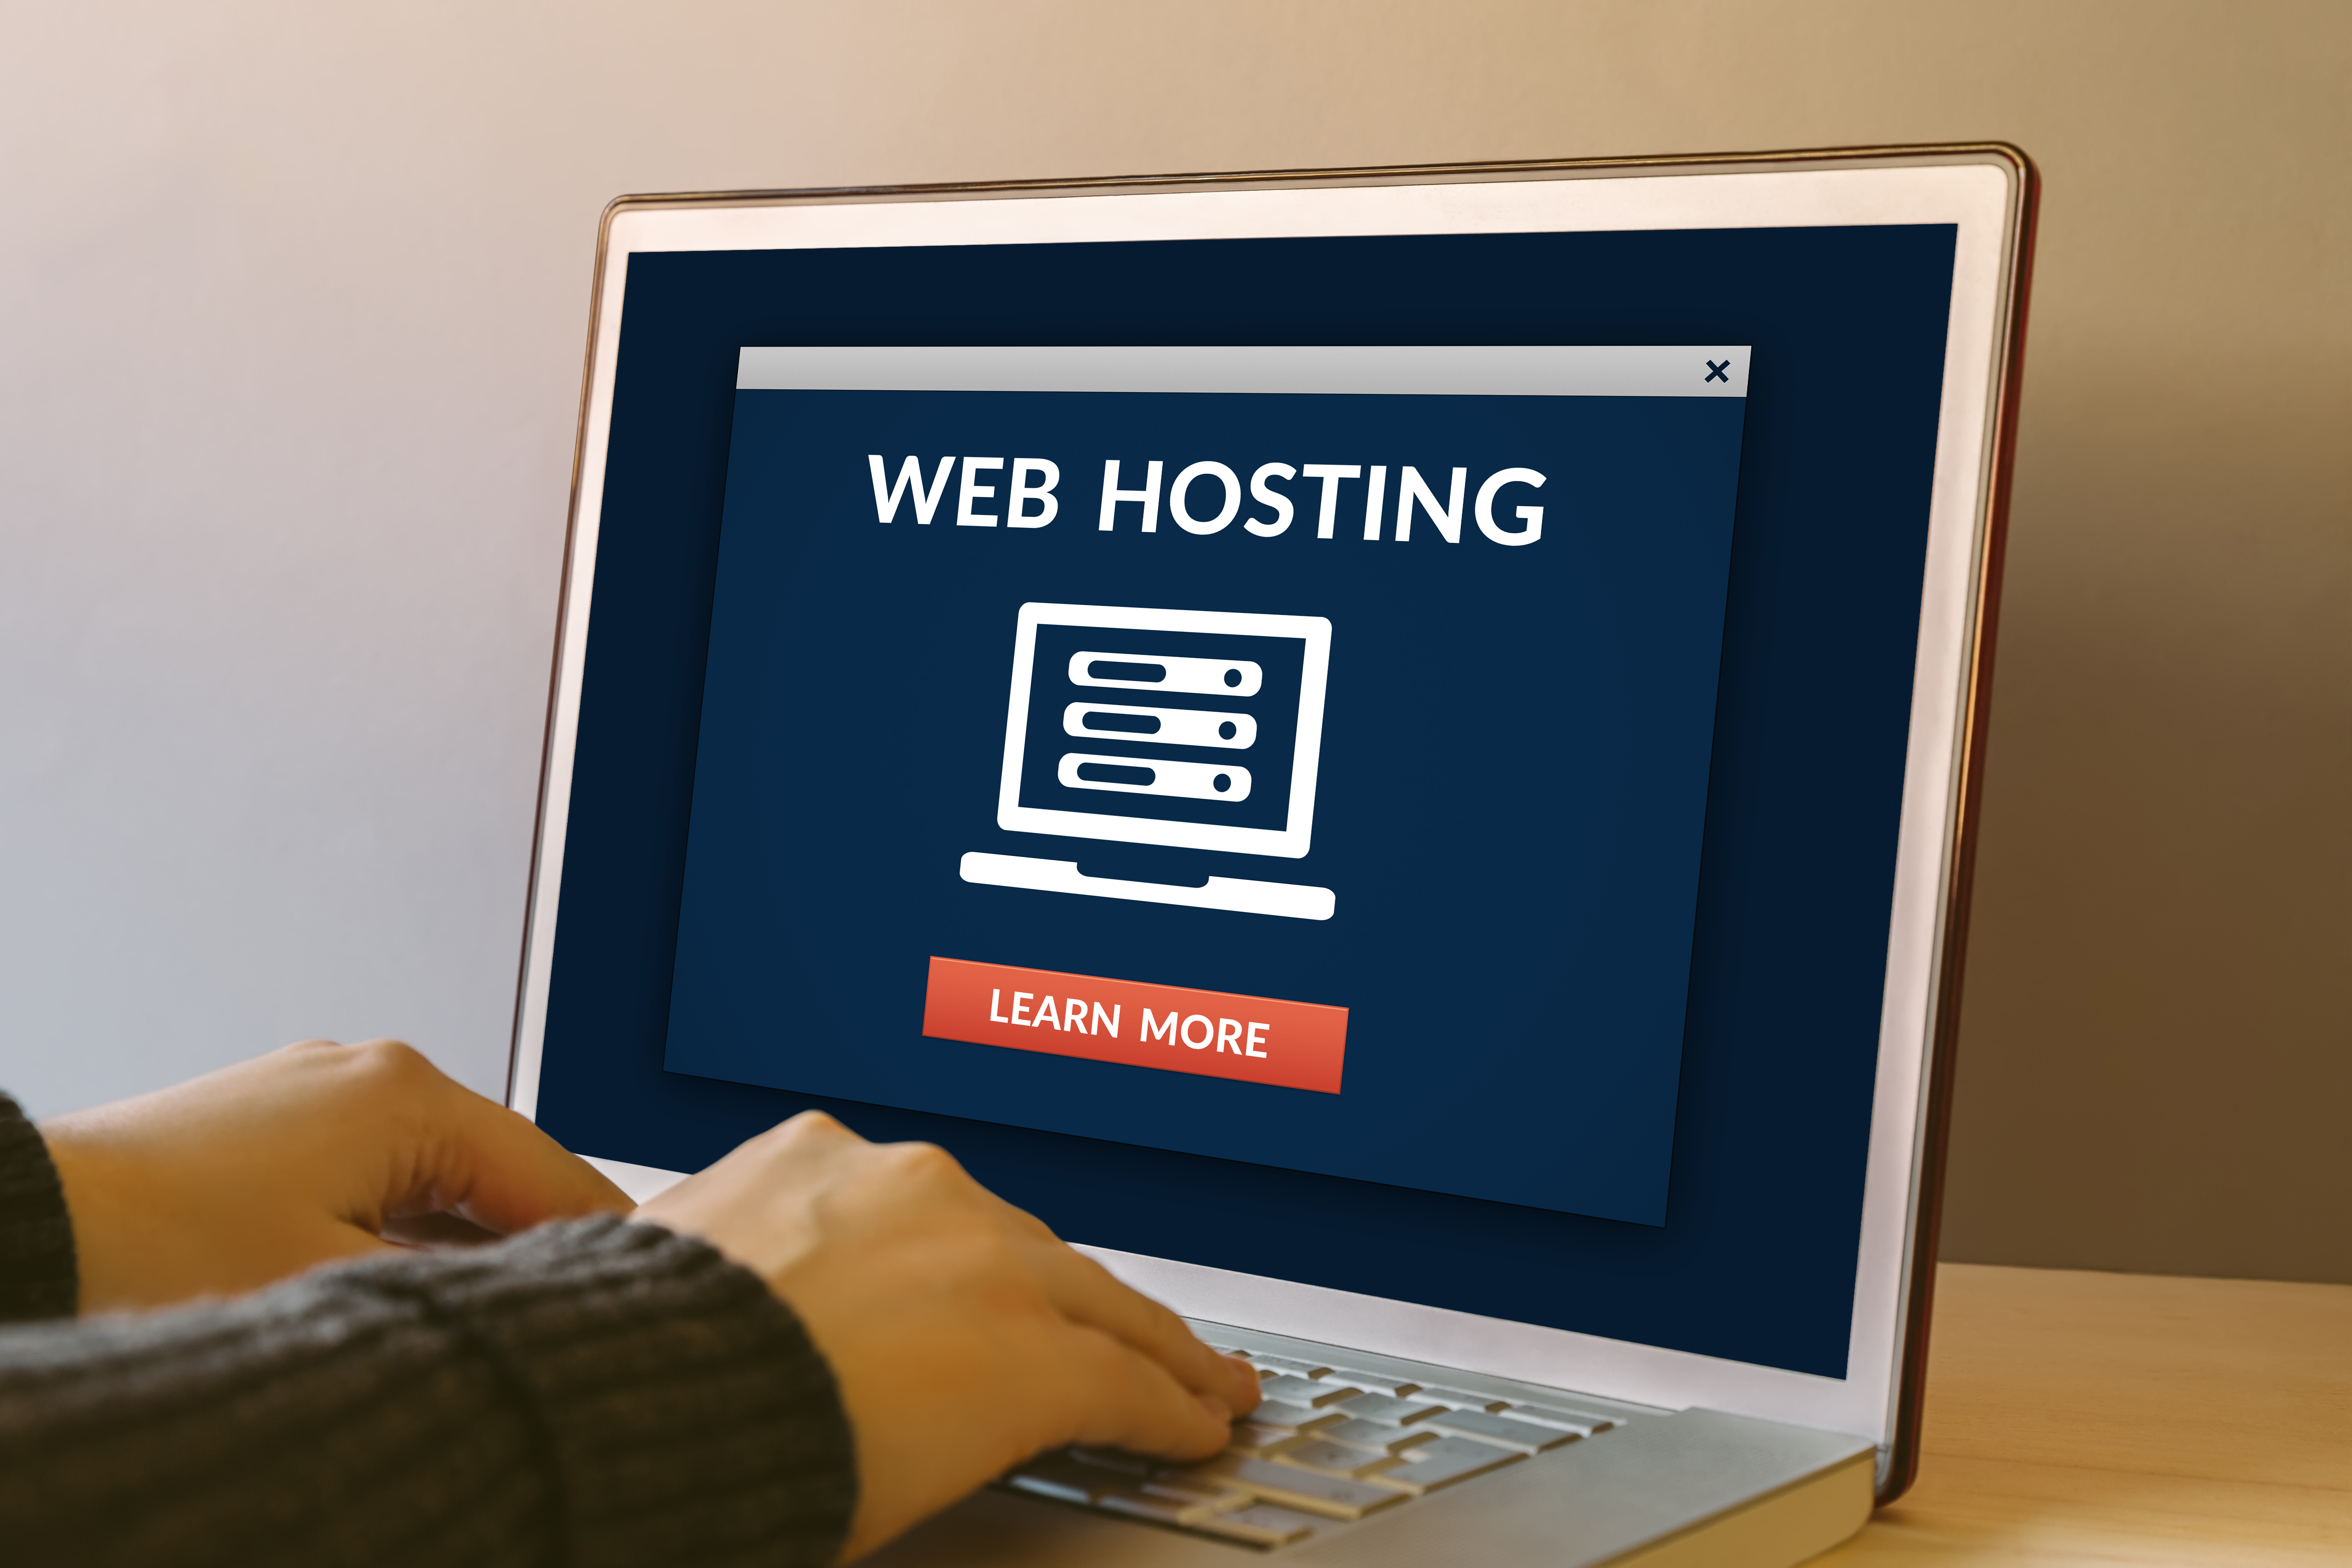 WebsiteHosting.com Launches